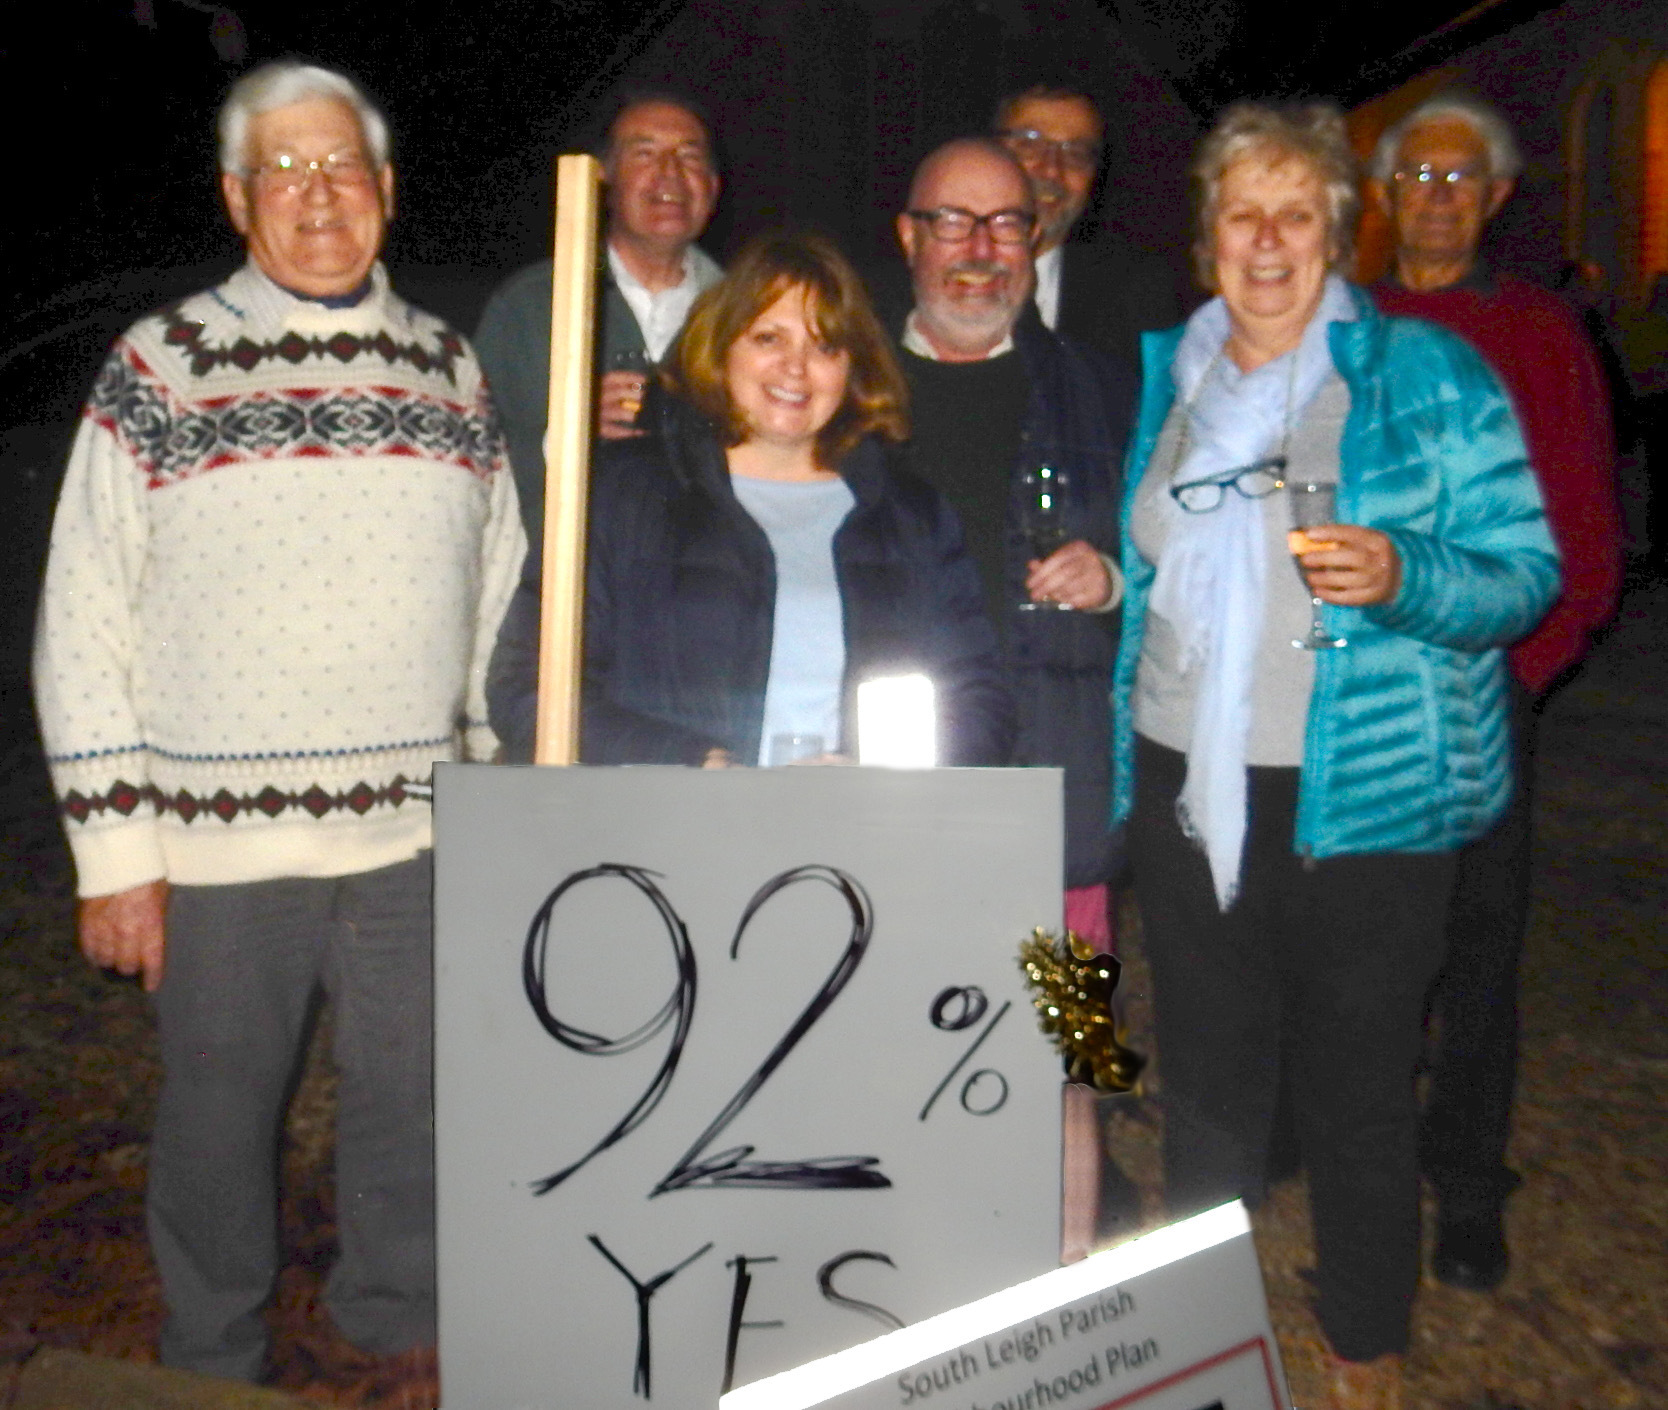 South Leigh residents celebrate a 92.4 percent vote in support of the village's Neighbourhood Plan 					Picture: Martin Spurrier